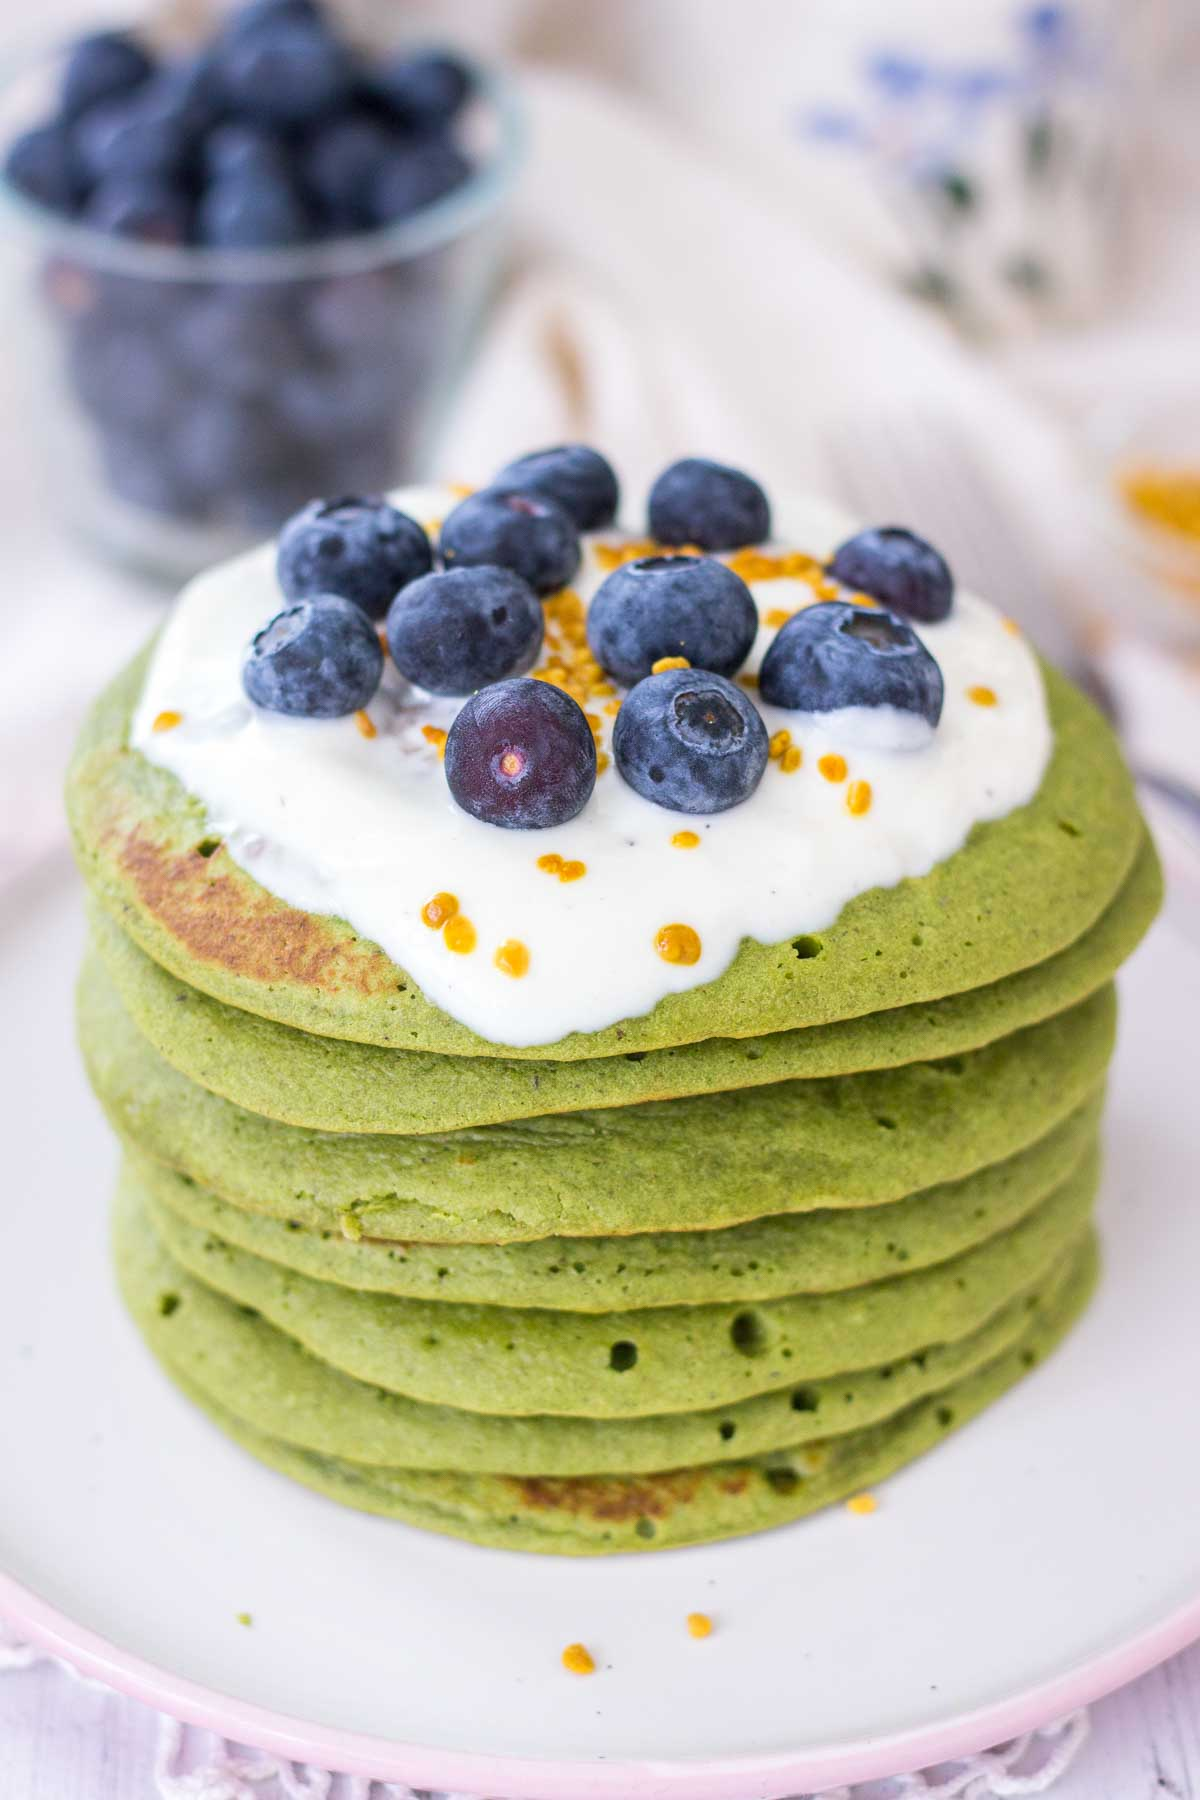 Matcha green tea pancakes served on a plate topped with fruits.